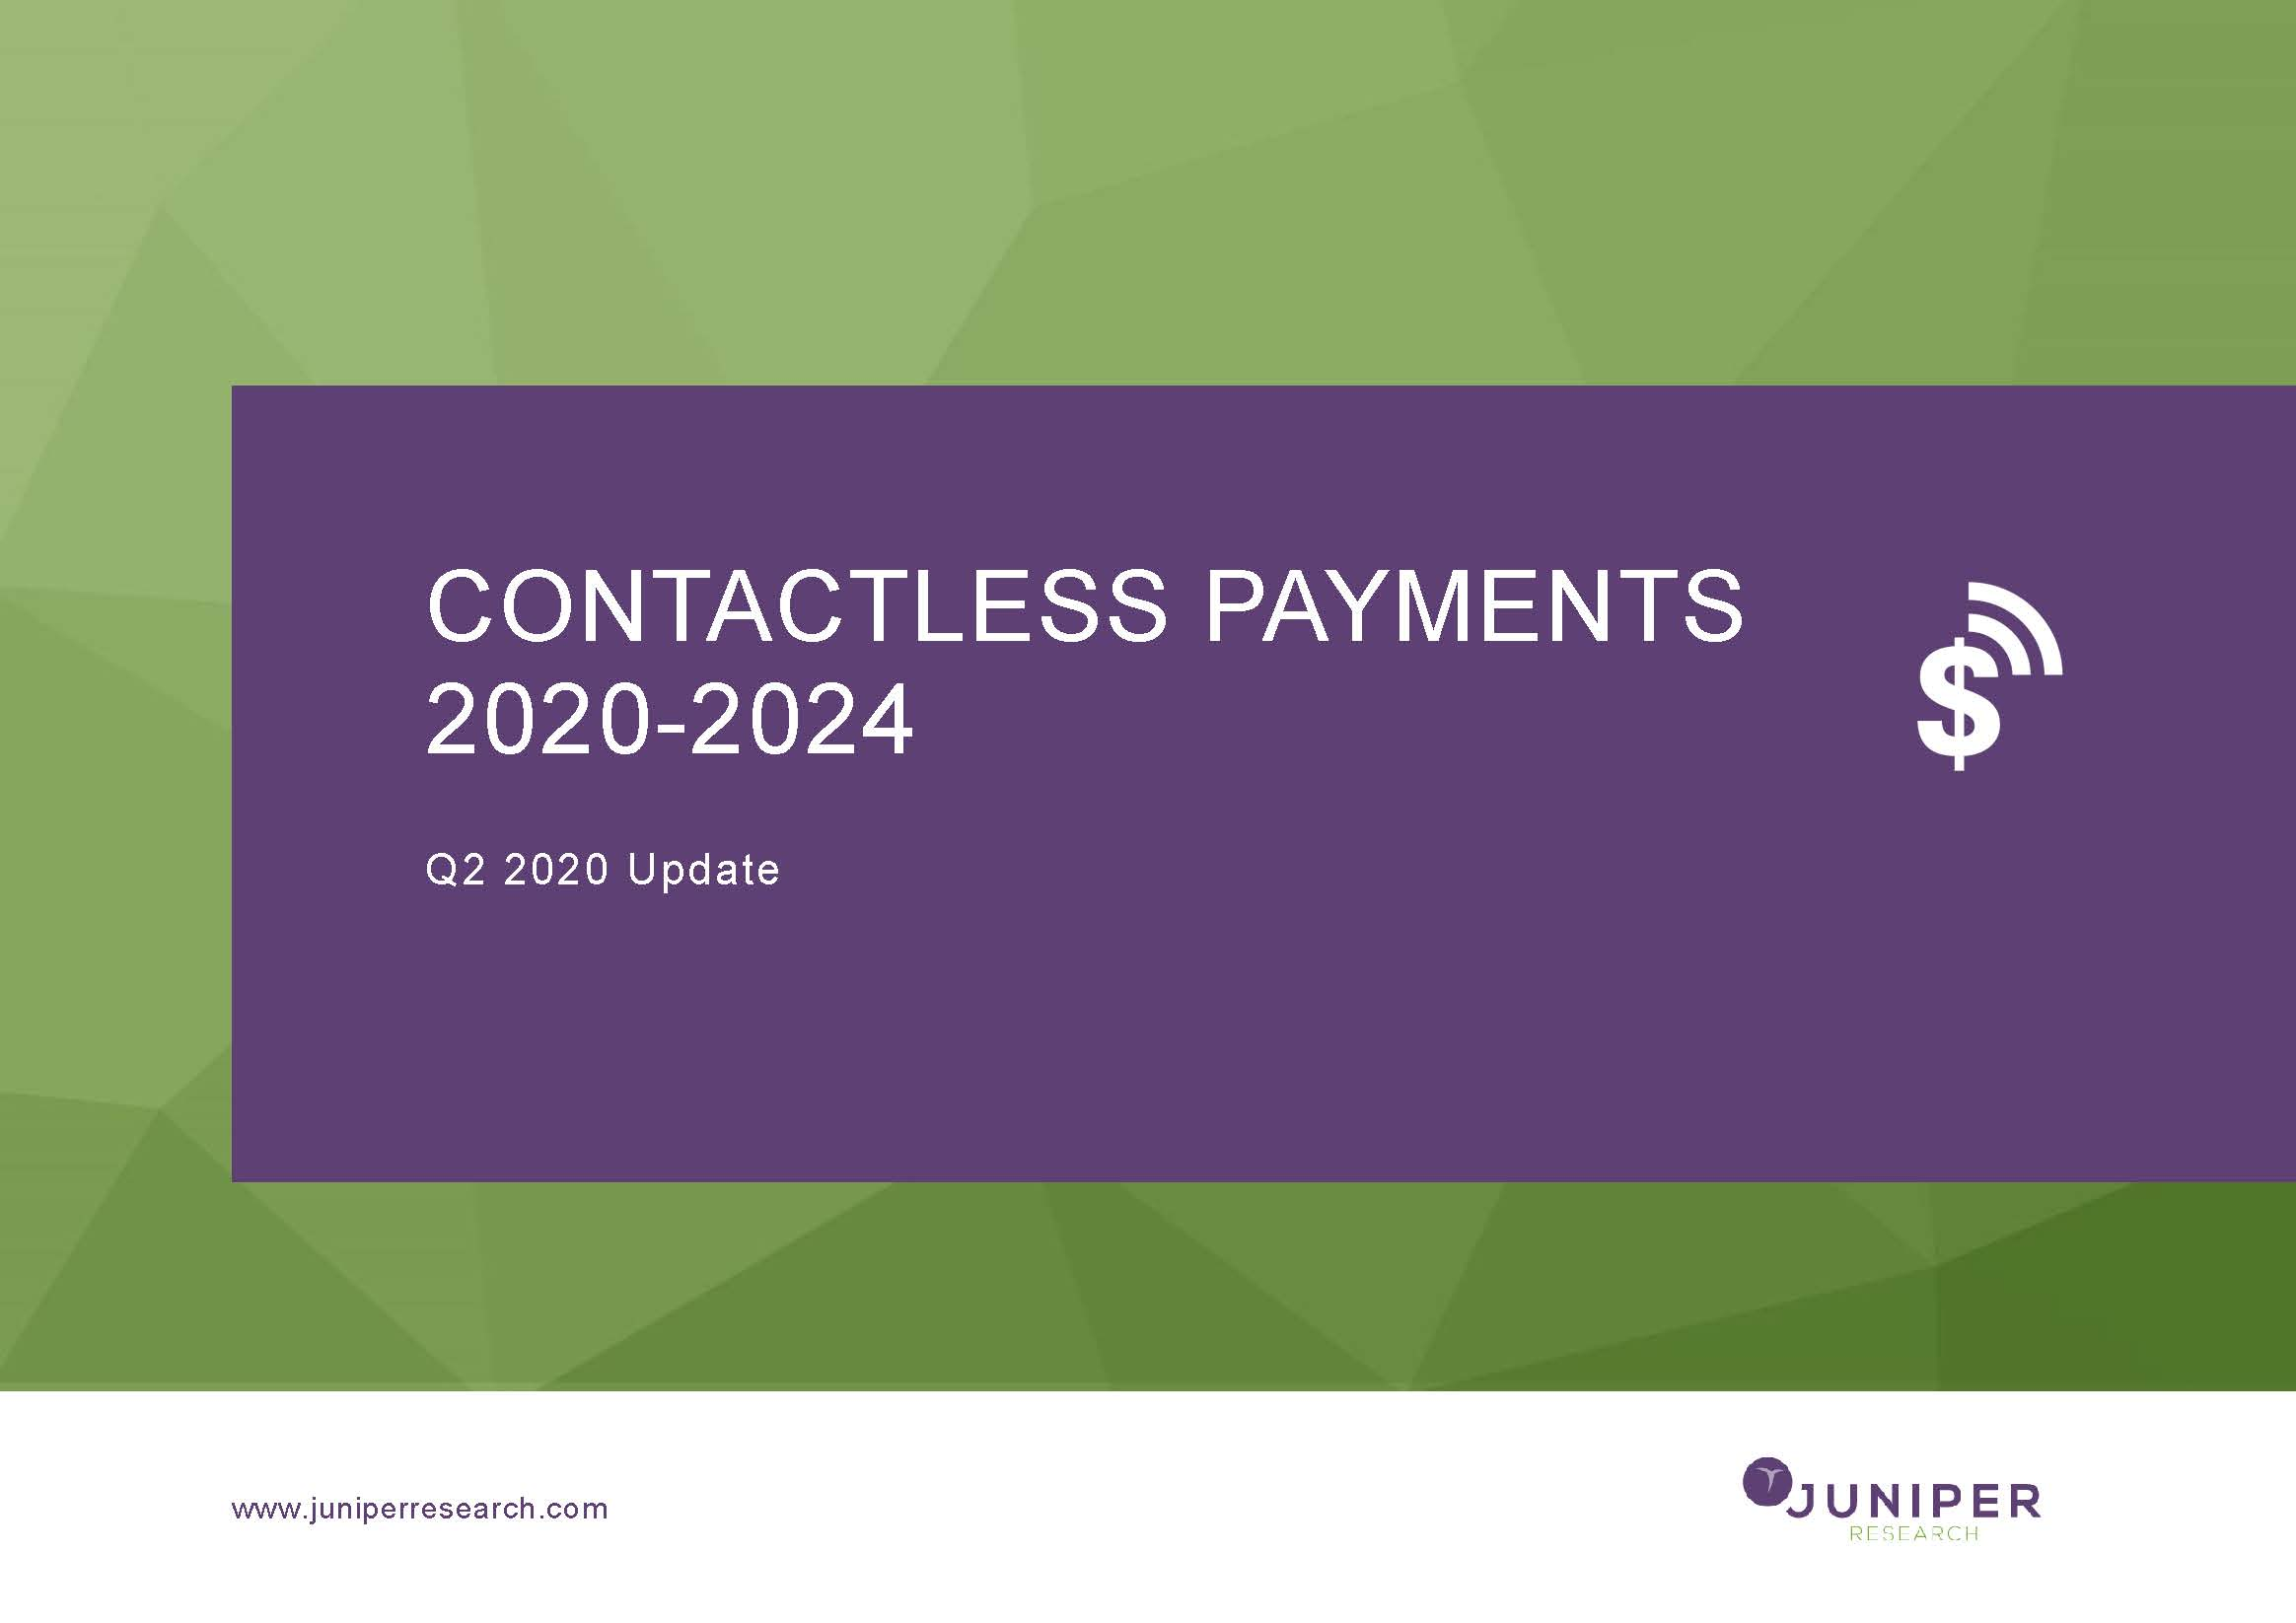 Contactless Payments - Q2 2020